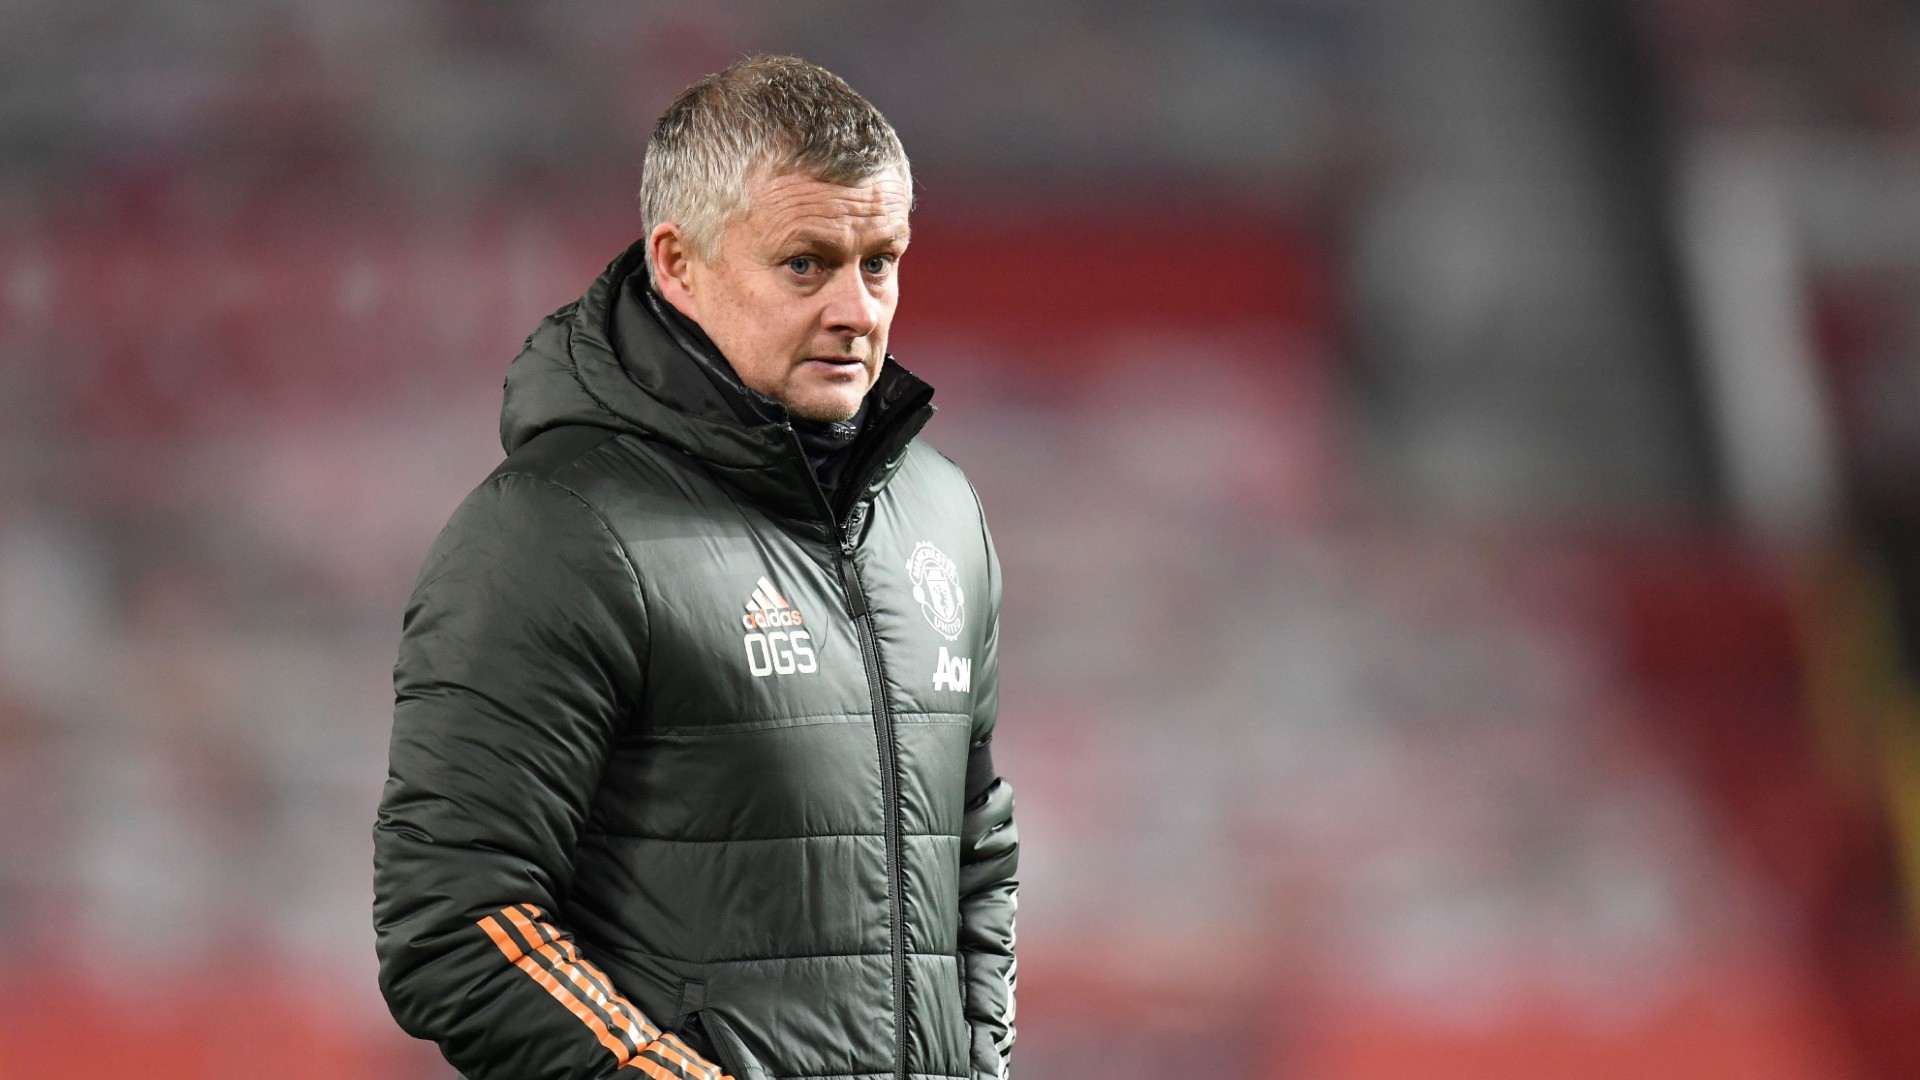 'We're not even halfway!' – Solskjaer not thinking about Man Utd Premier League title tilt